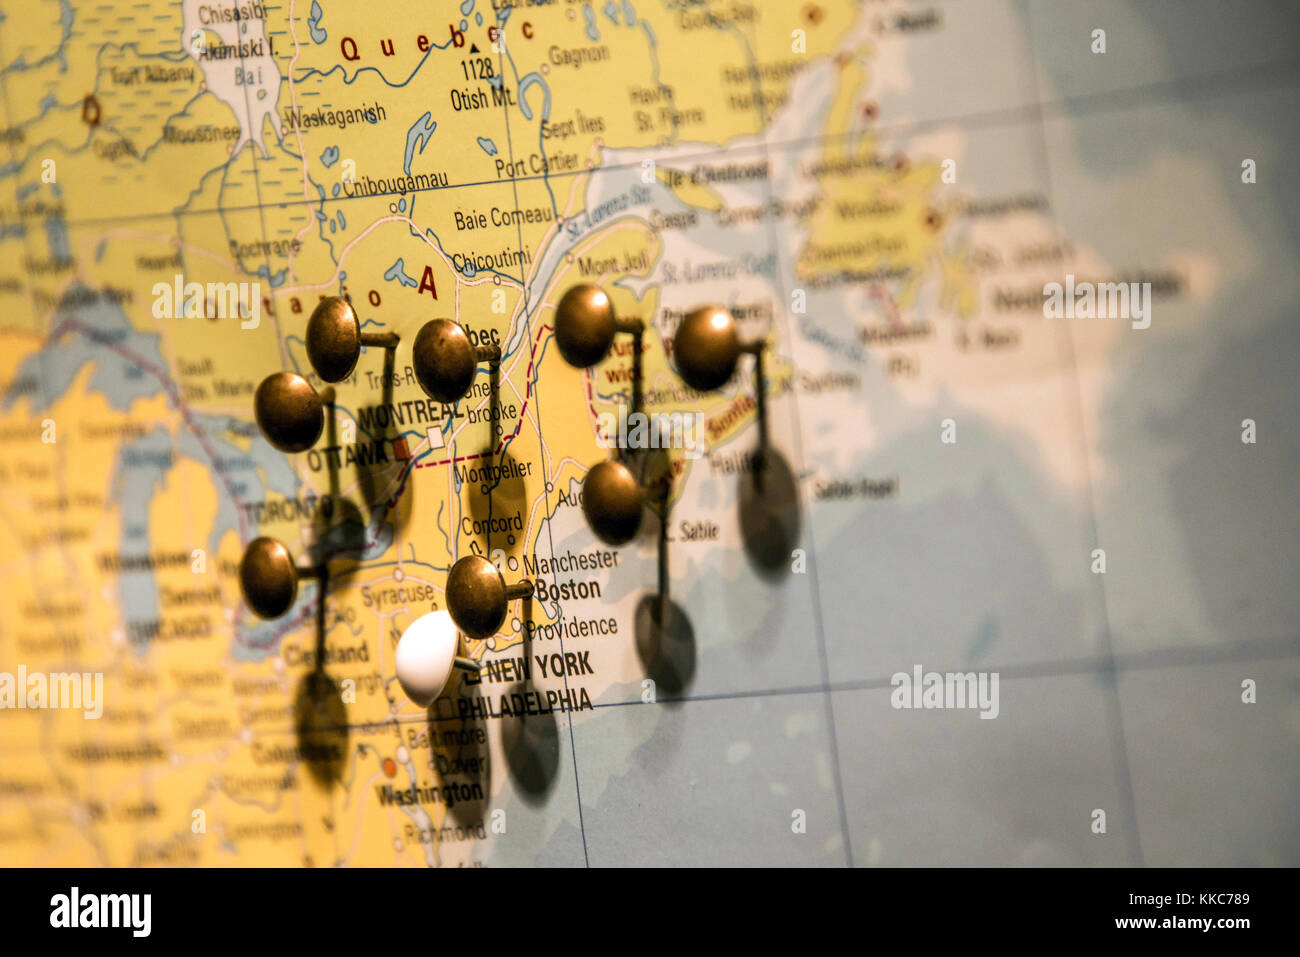 West coast usa map stock photos west coast usa map stock images picture of world map travel concept with many pushpins pins in east usa and canada gumiabroncs Image collections